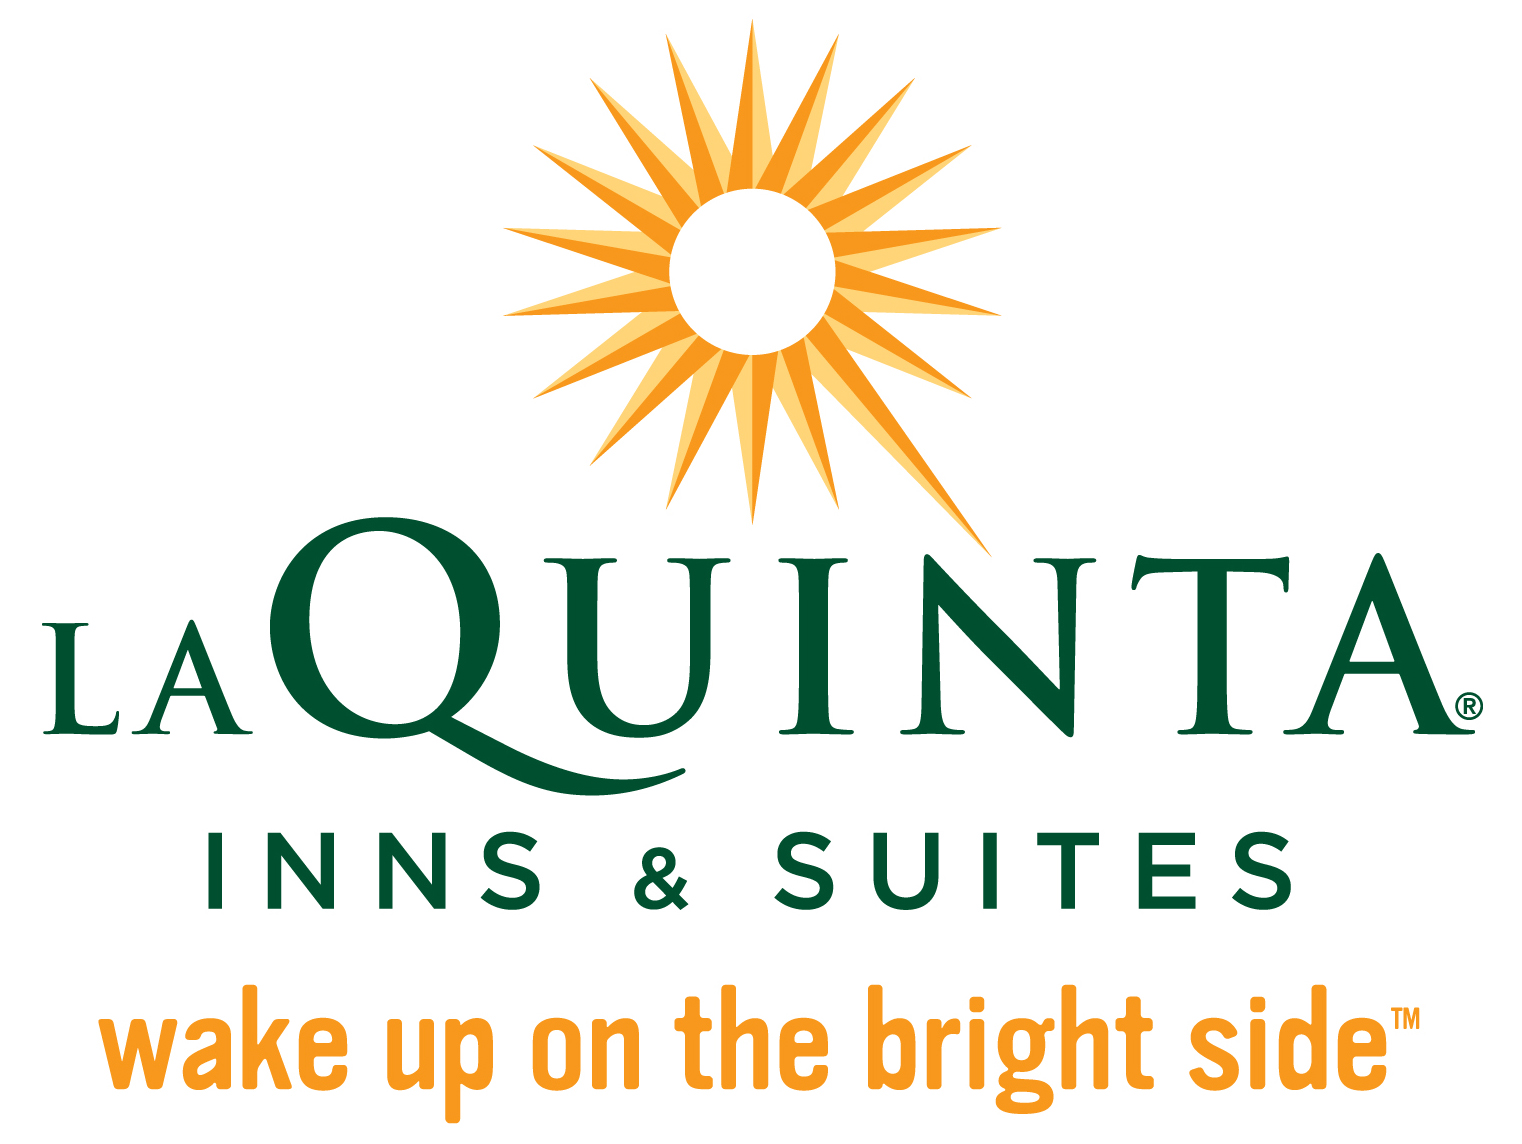 La Qunita Inn and Suites